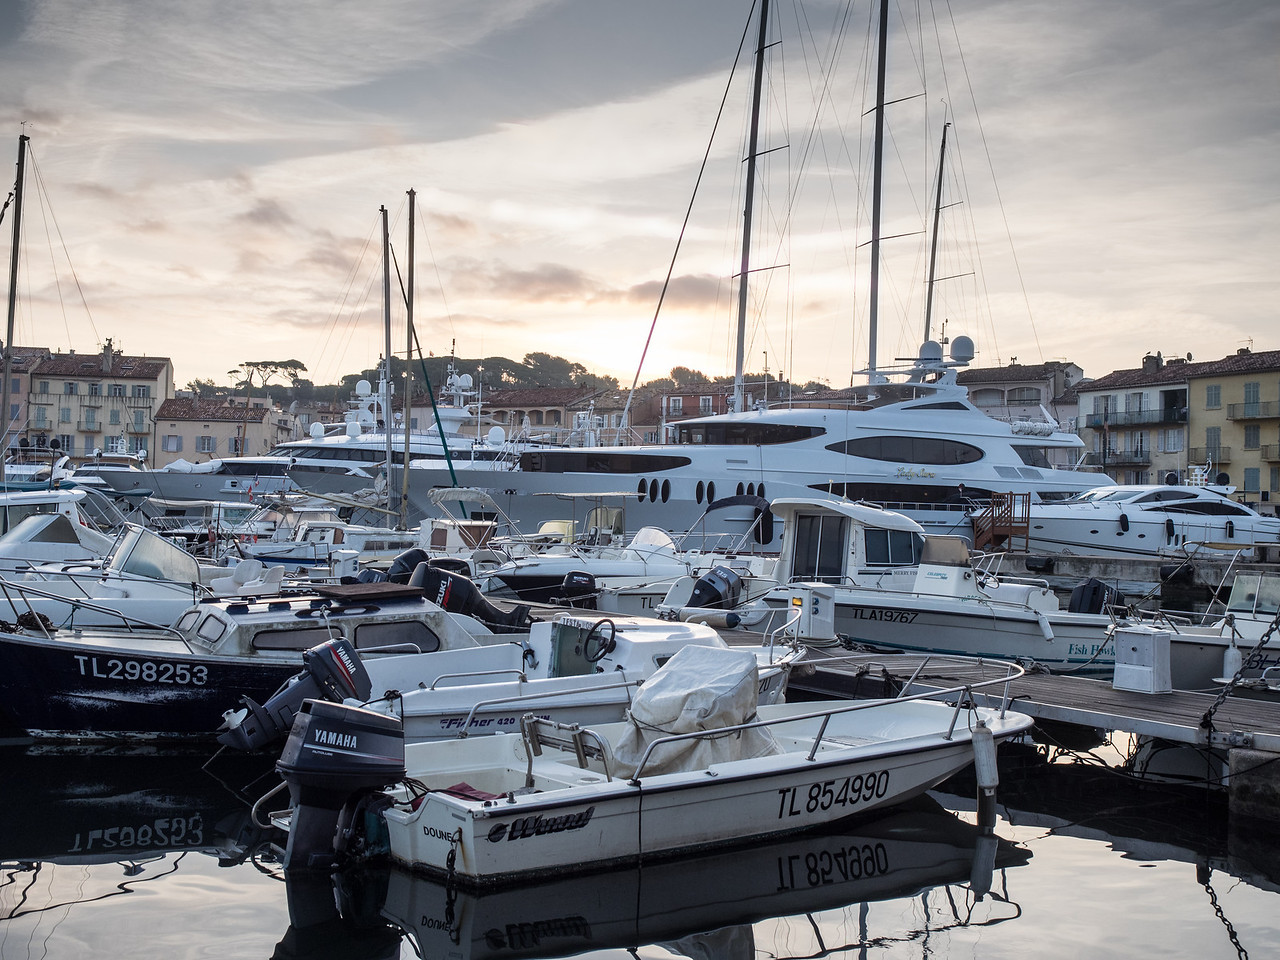 St Tropez harbour at dawn